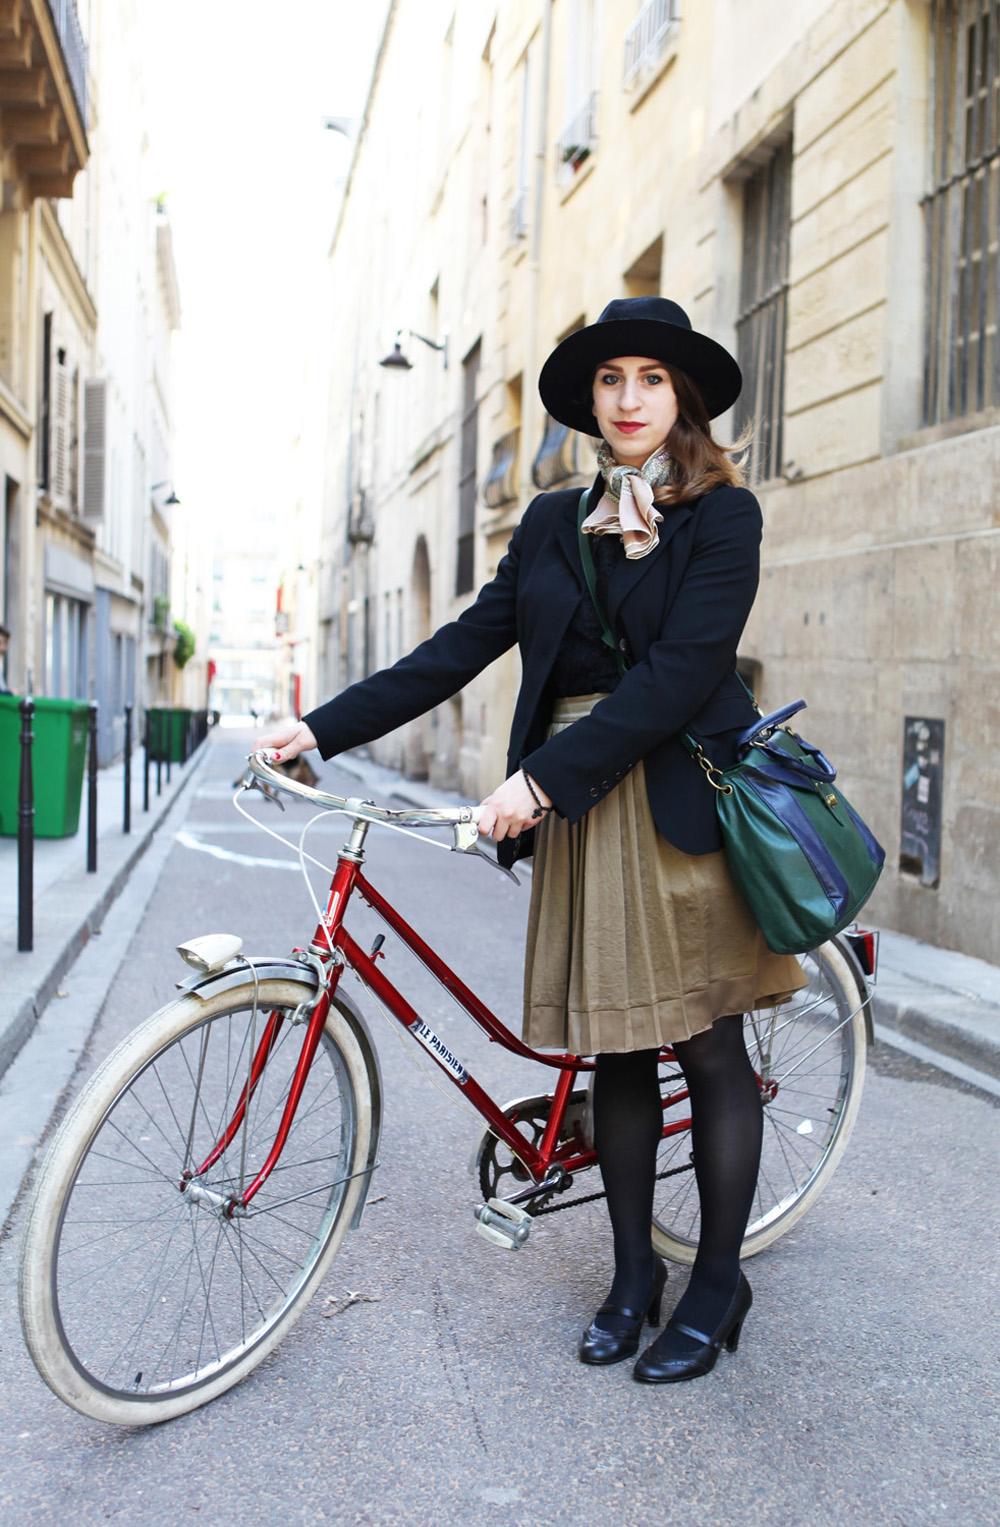 Beret-Baguette-Paris-Bike-Pretty-Bike-Fashion-Photo-Kelly-Miller-6